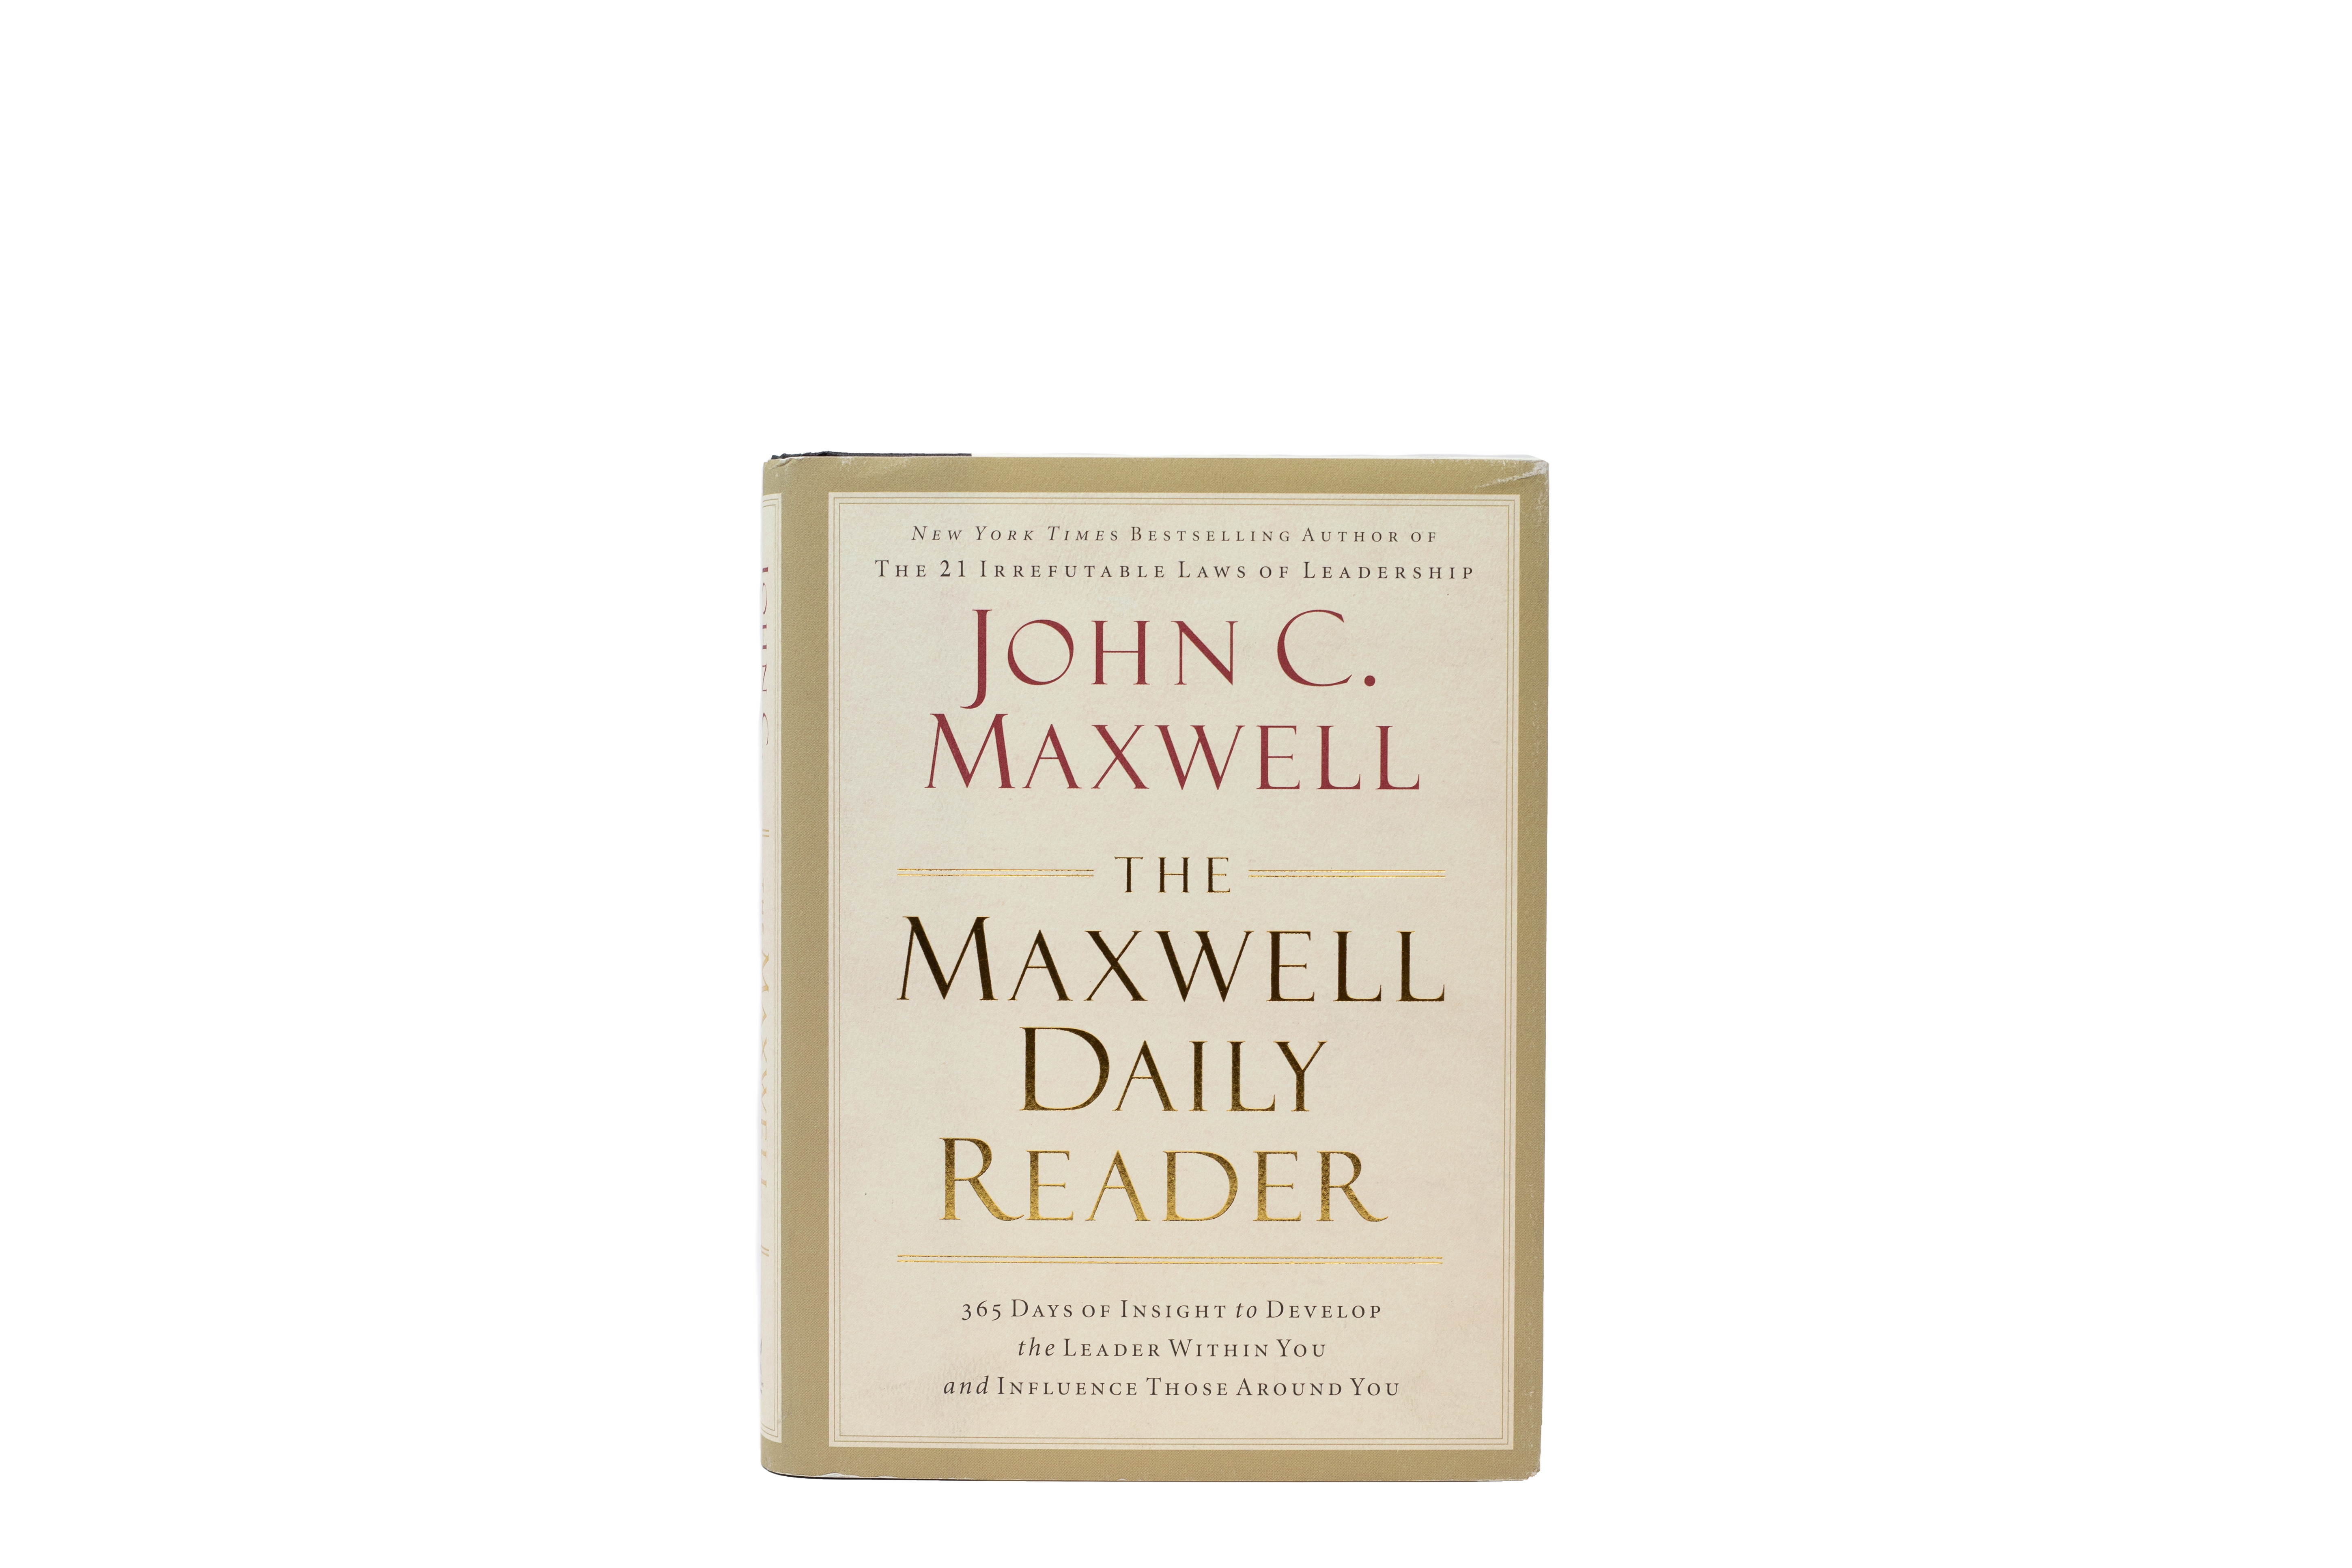 Maxwell Daily Reader [Hardcover]